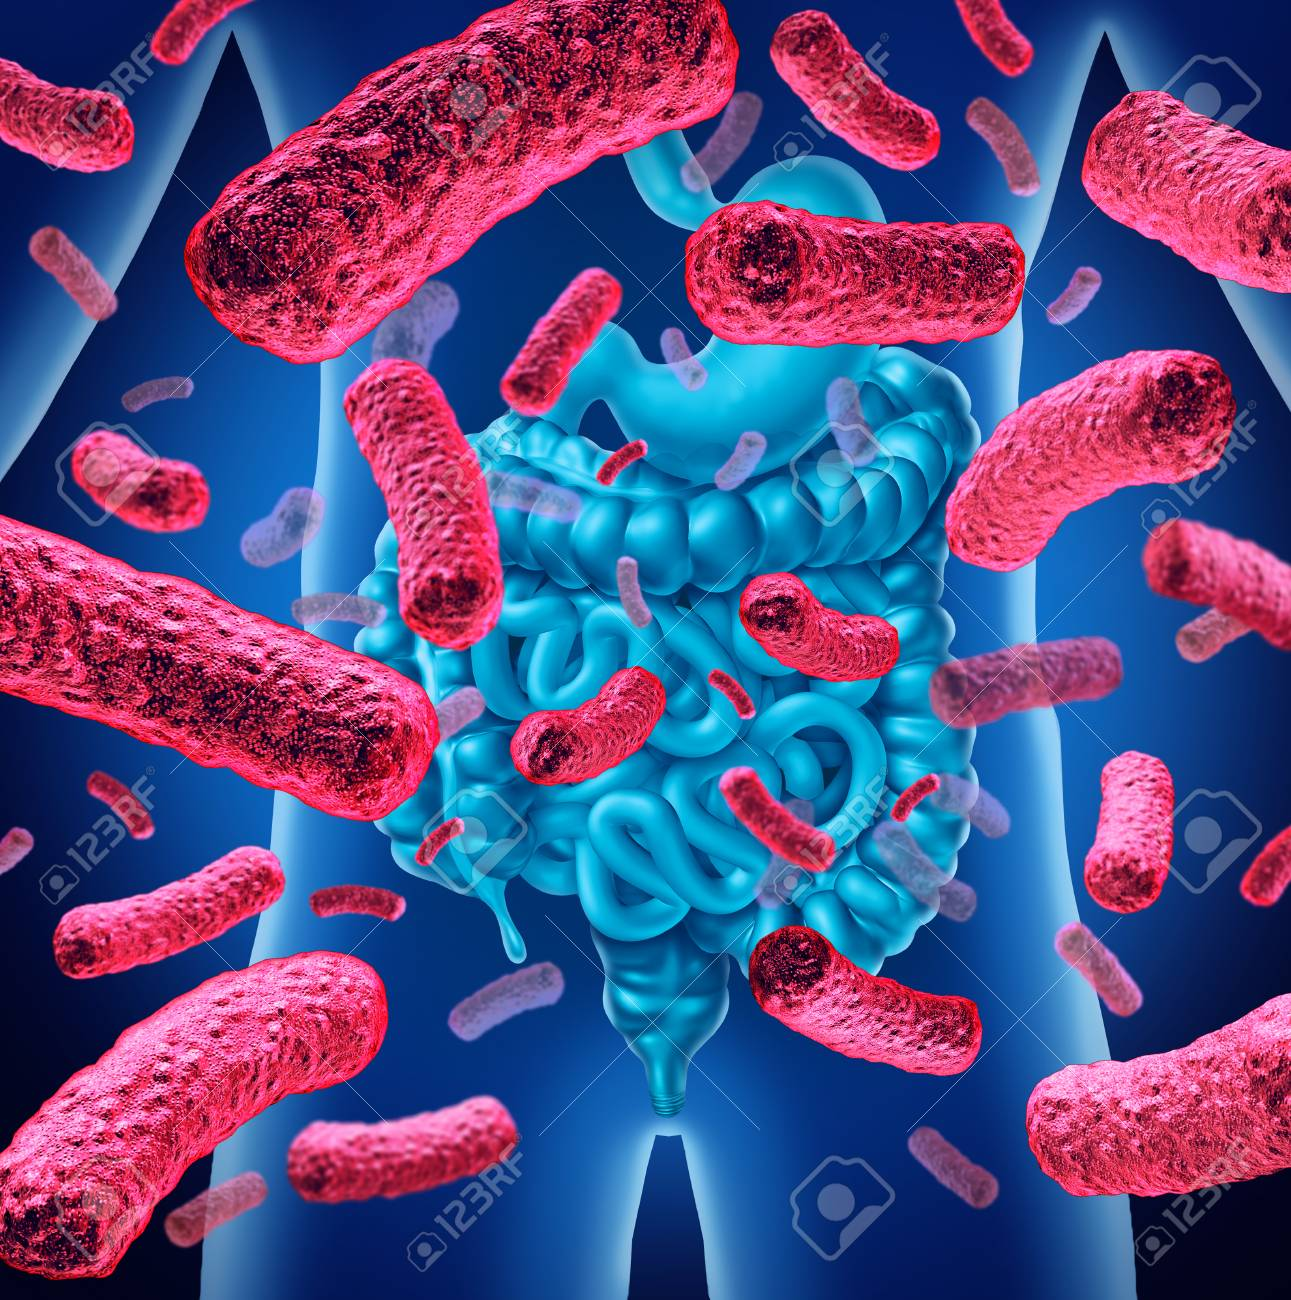 Intestine bacteria and gut flora or intestinal bacterium medical anatomy concept as a 3D illustration. - 101534494